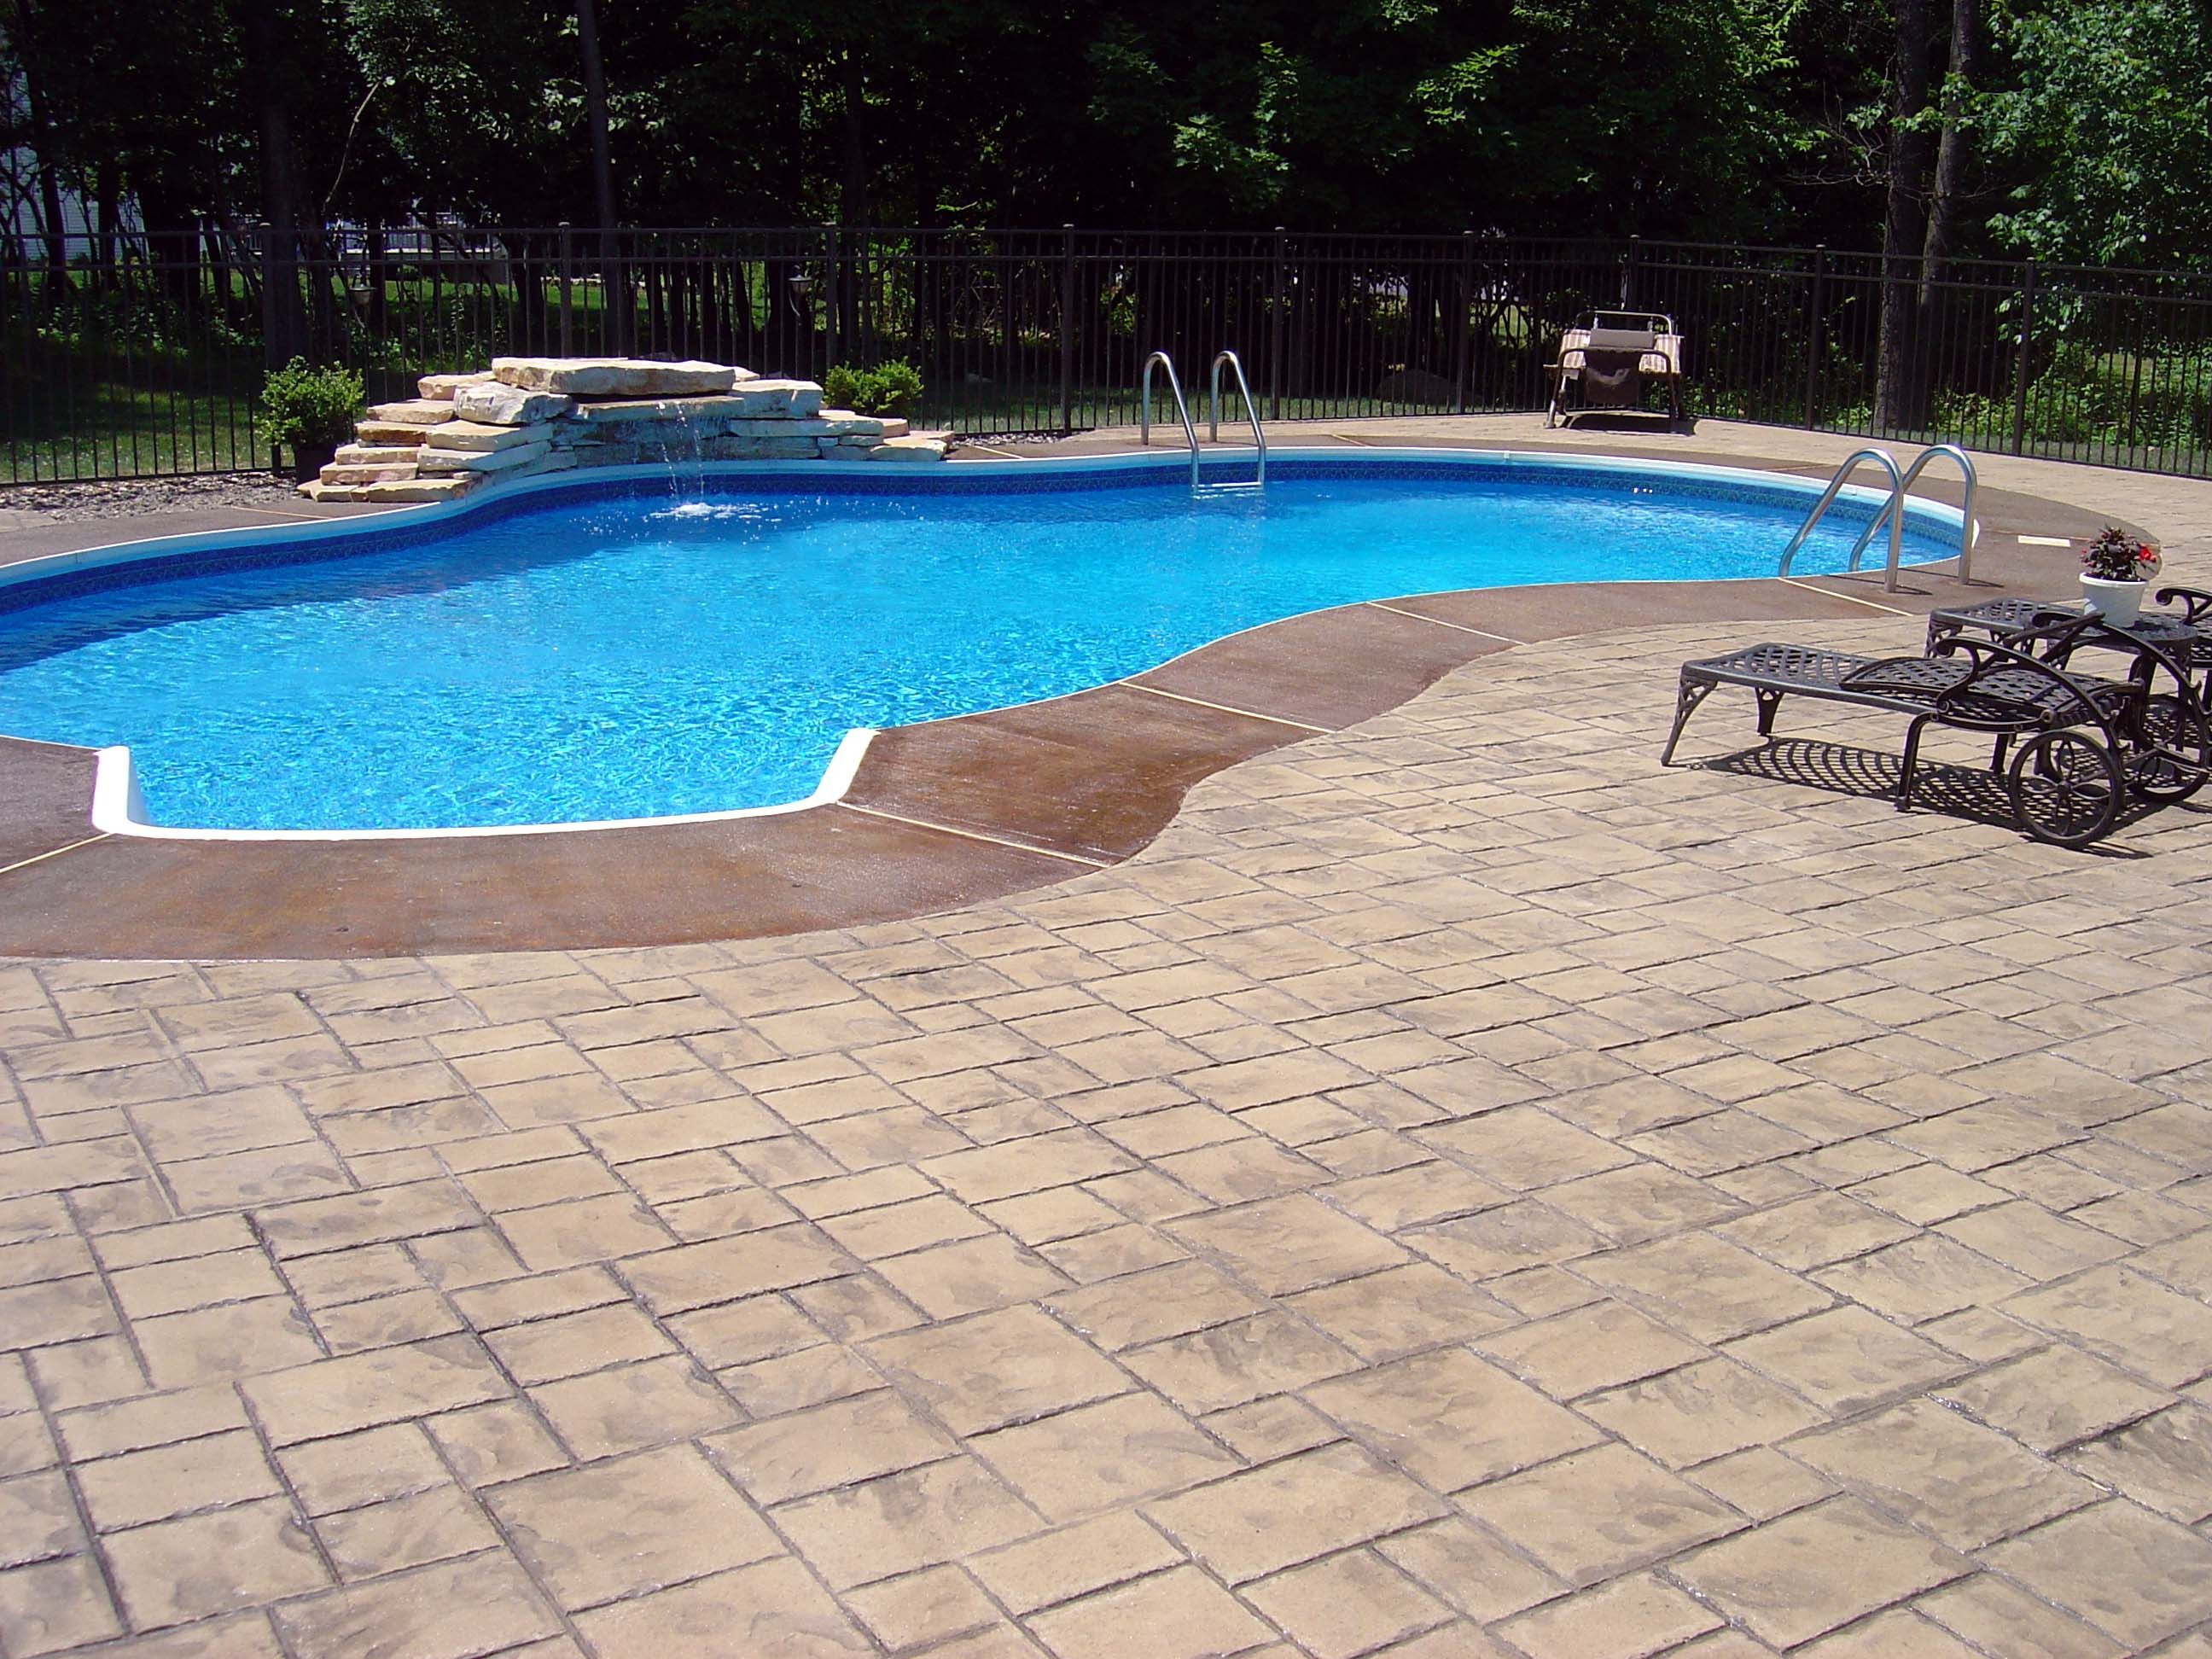 Concrete Pool Ideas this decorative concrete pool deck stayed with concretes natural coloring and also included subtle texturing Stamped Concrete Pool Patio